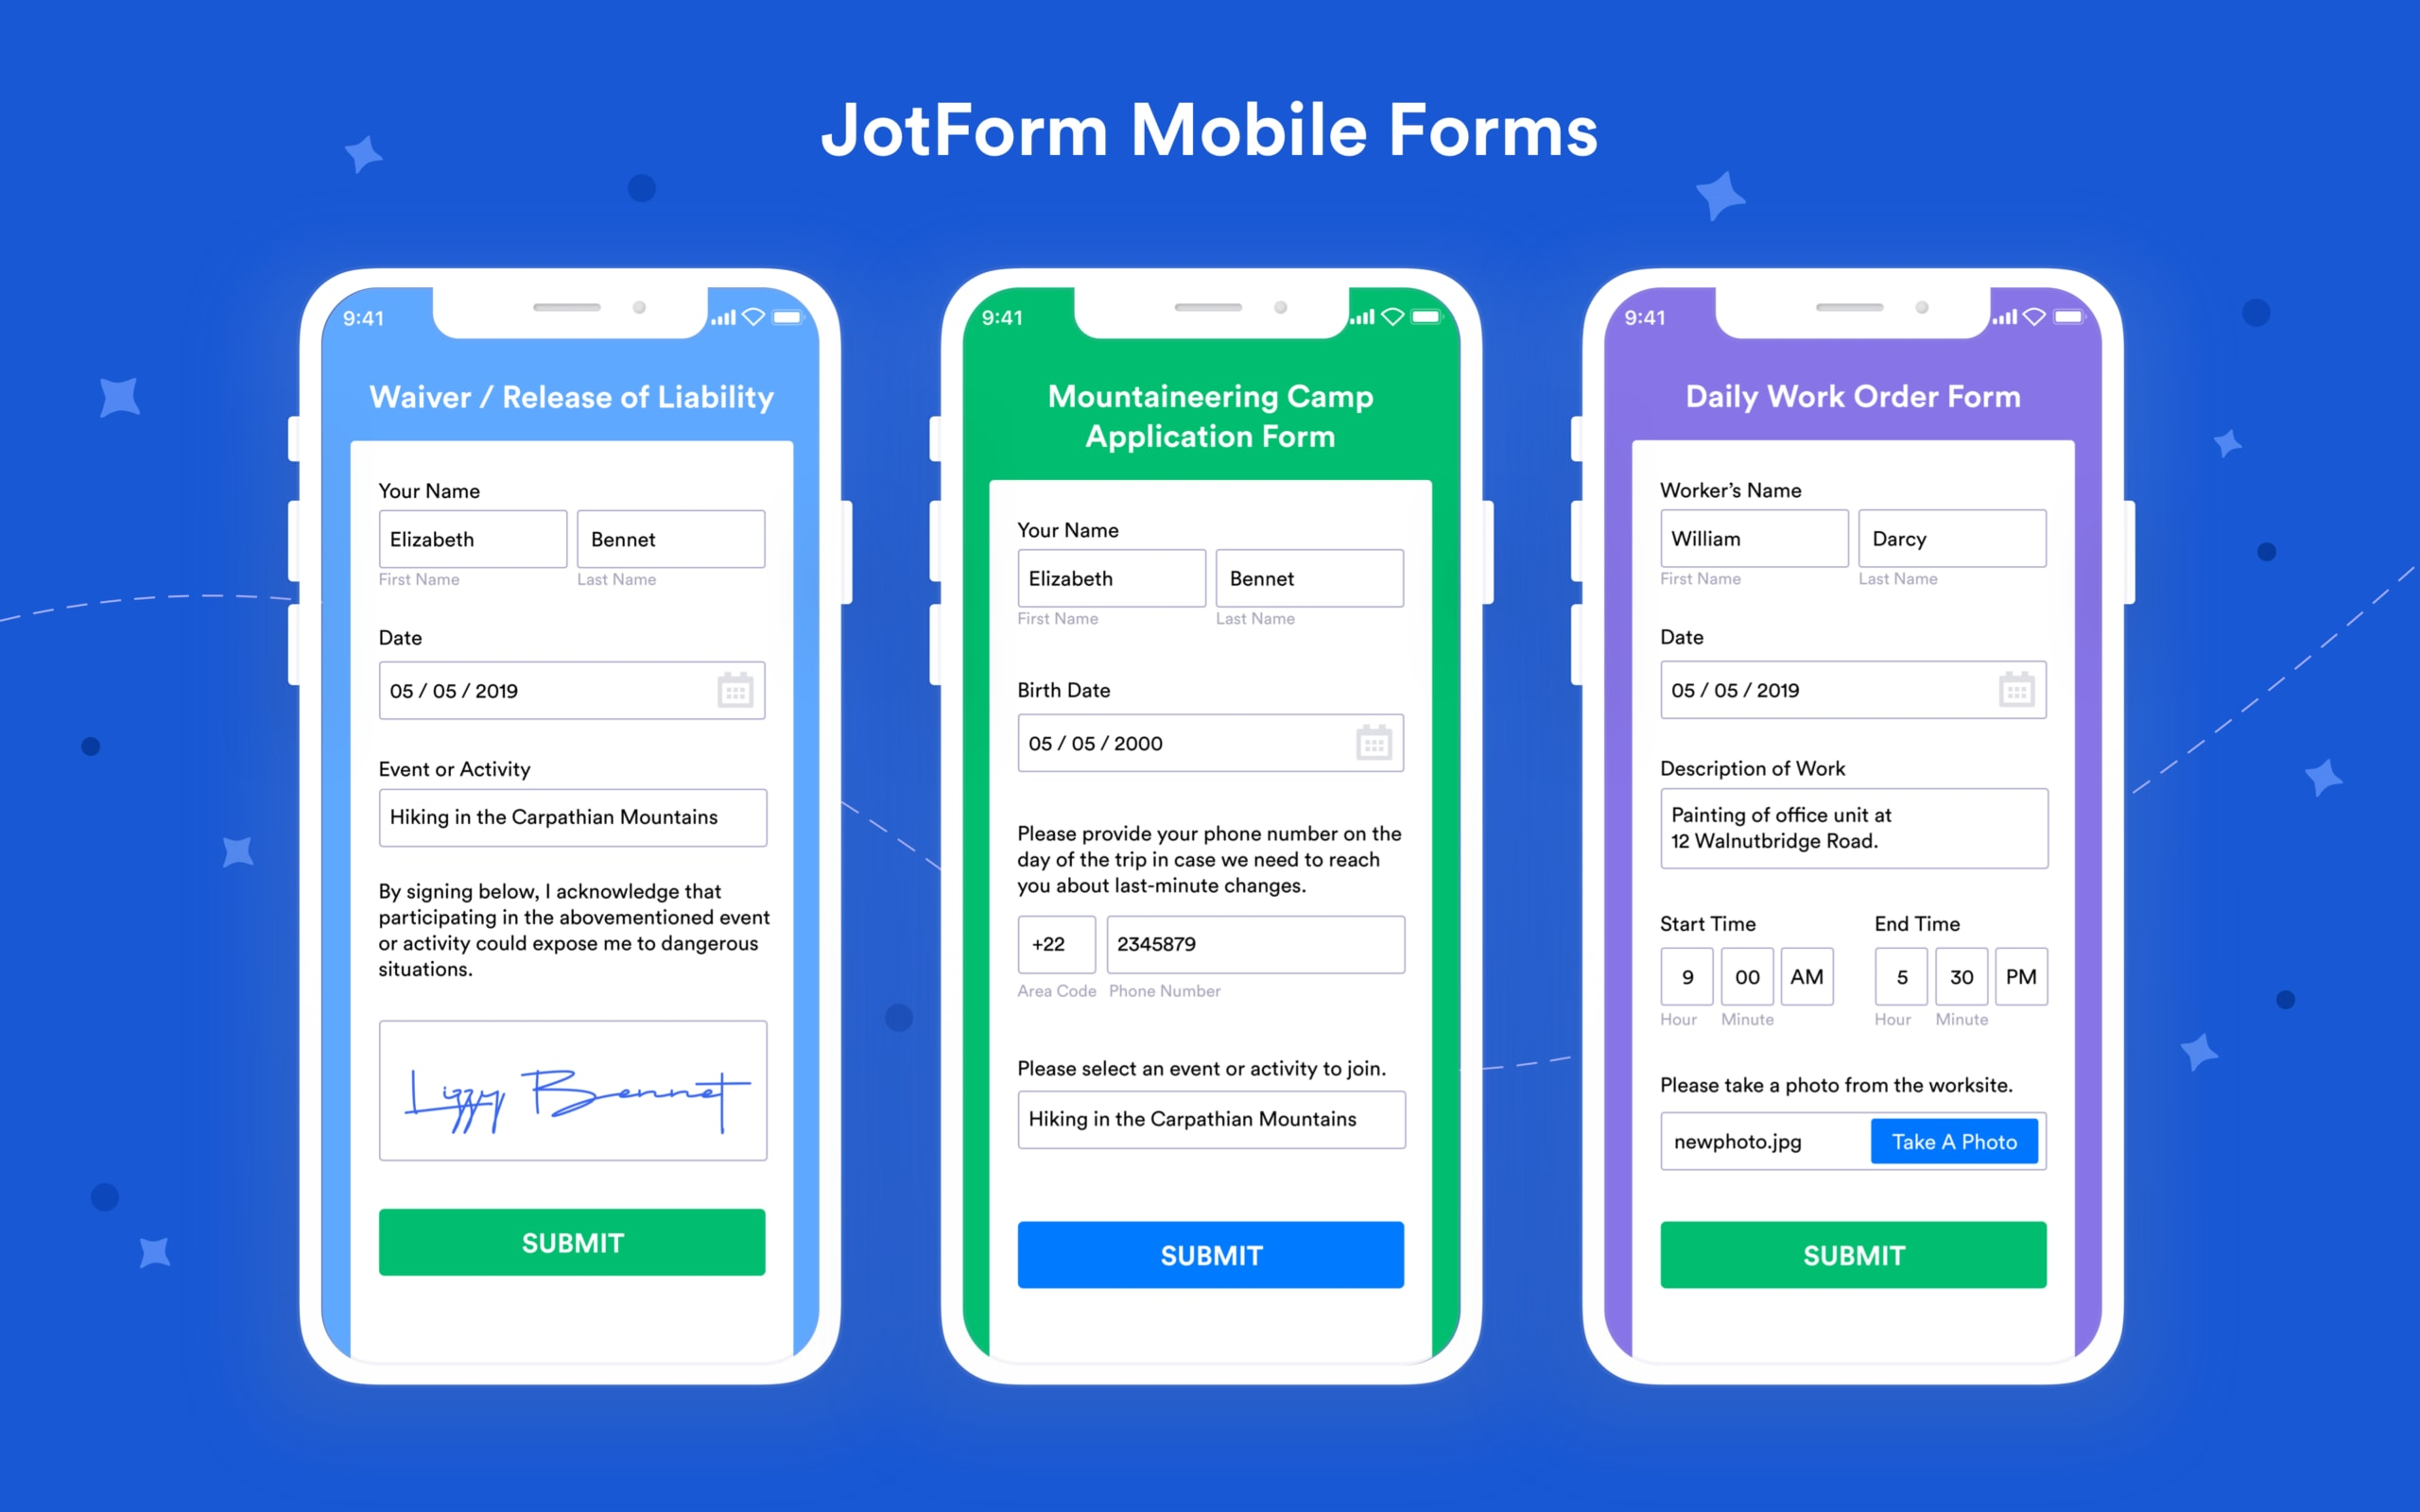 JotForm Mobile Forms launches to improve remote data collection